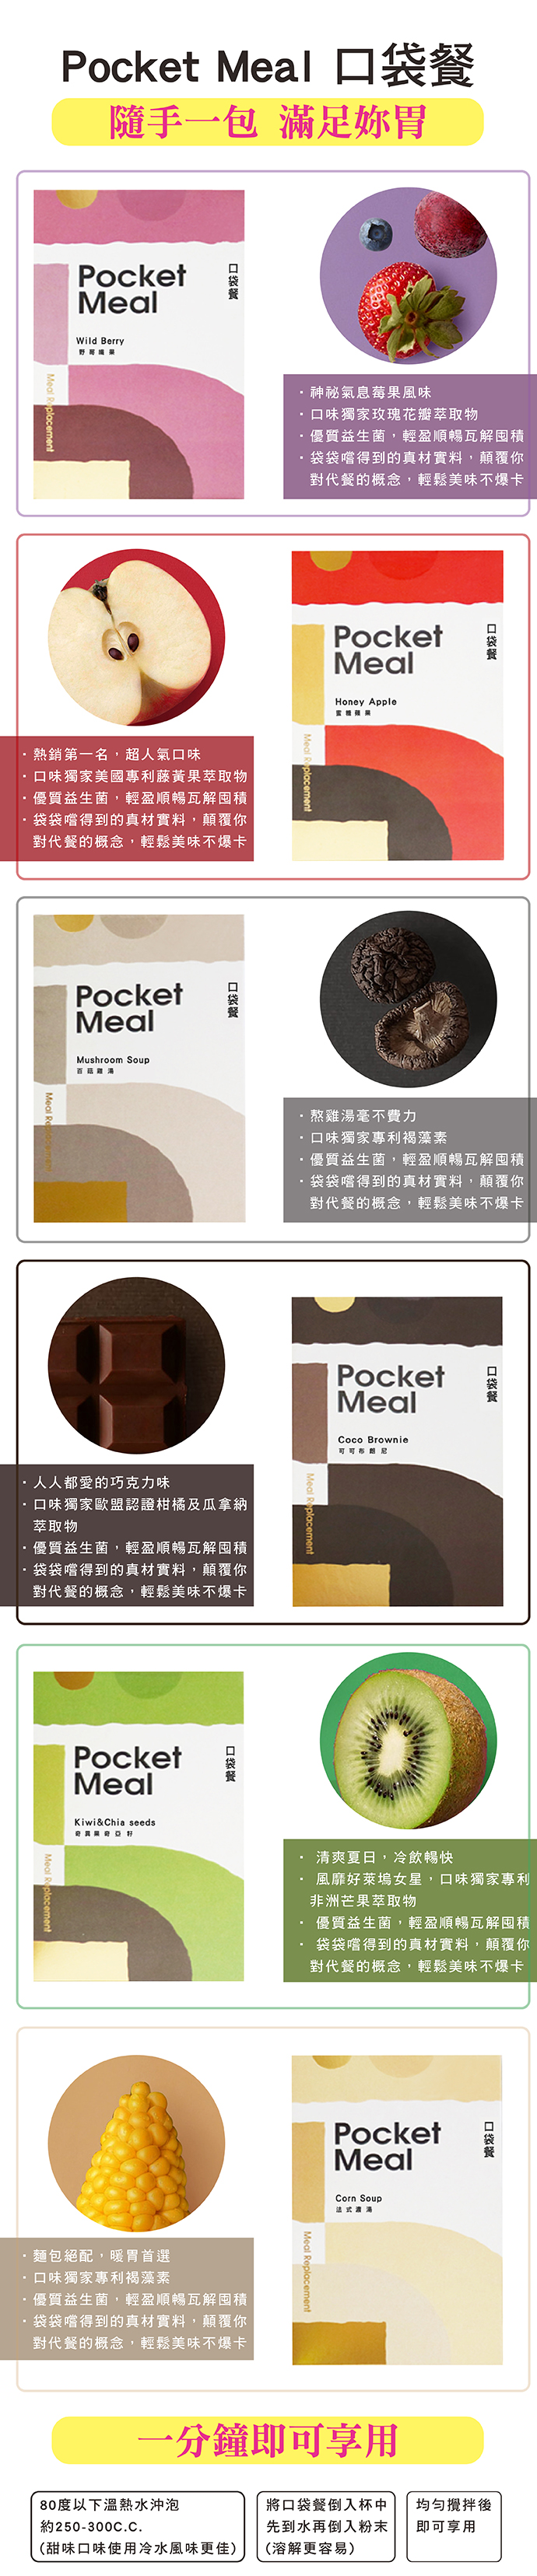 Pocket Meal口袋餐